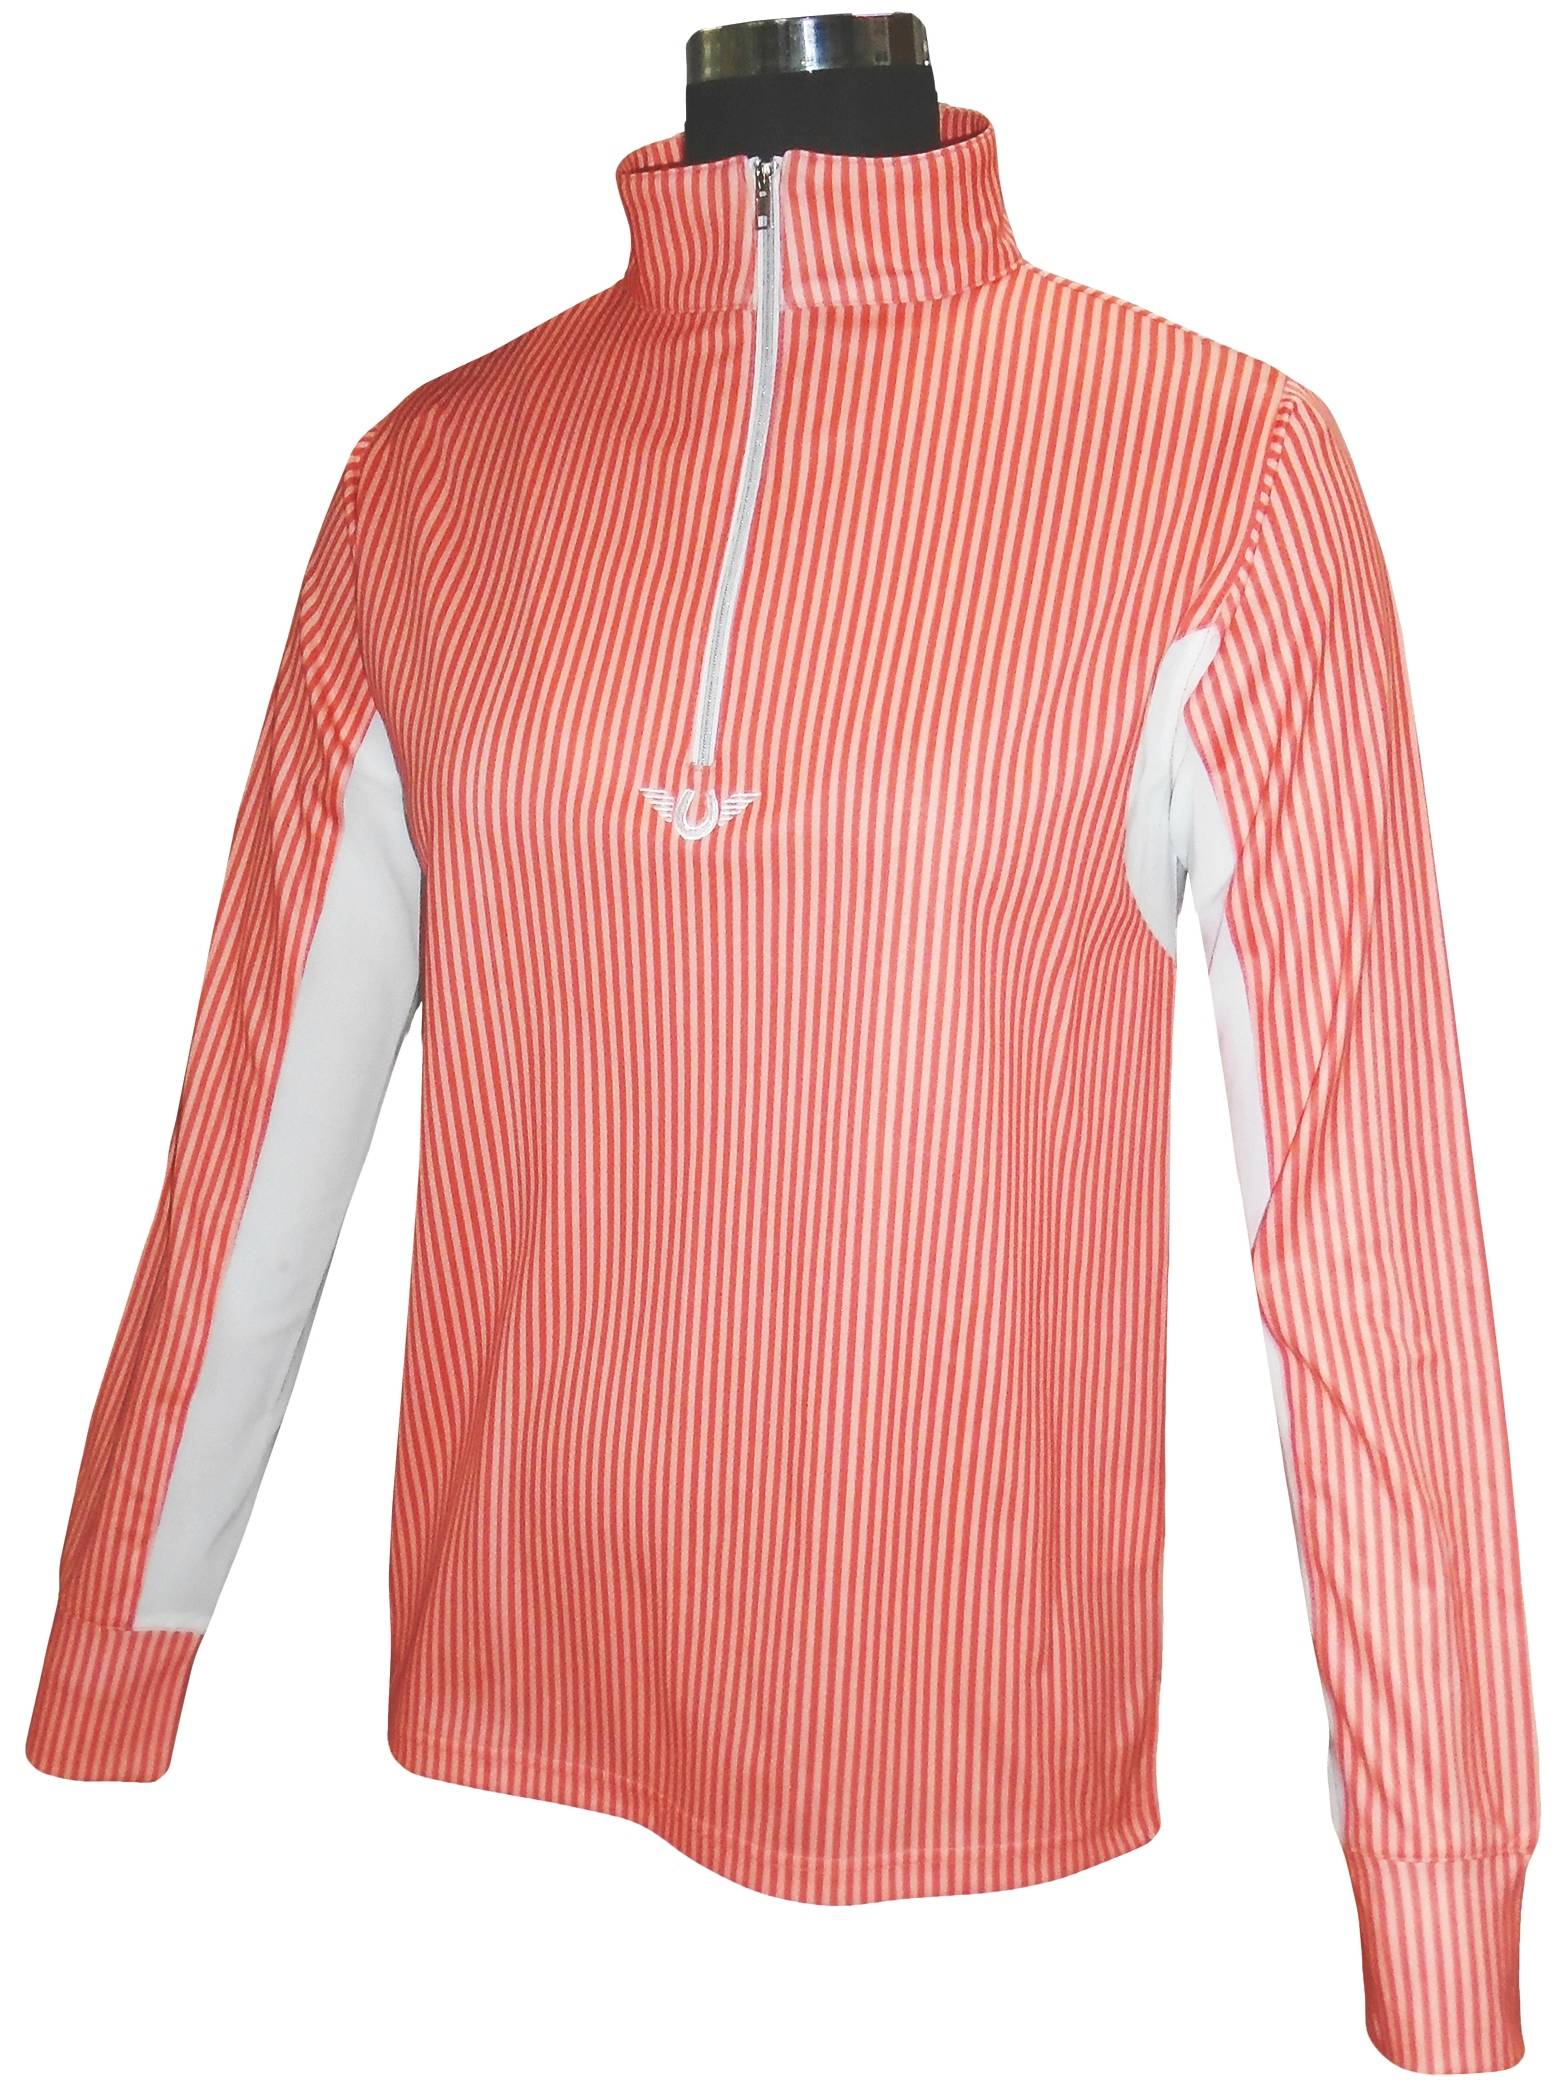 TuffRider Ladies' Neon Stripe Long Sleeve Technical Shirt